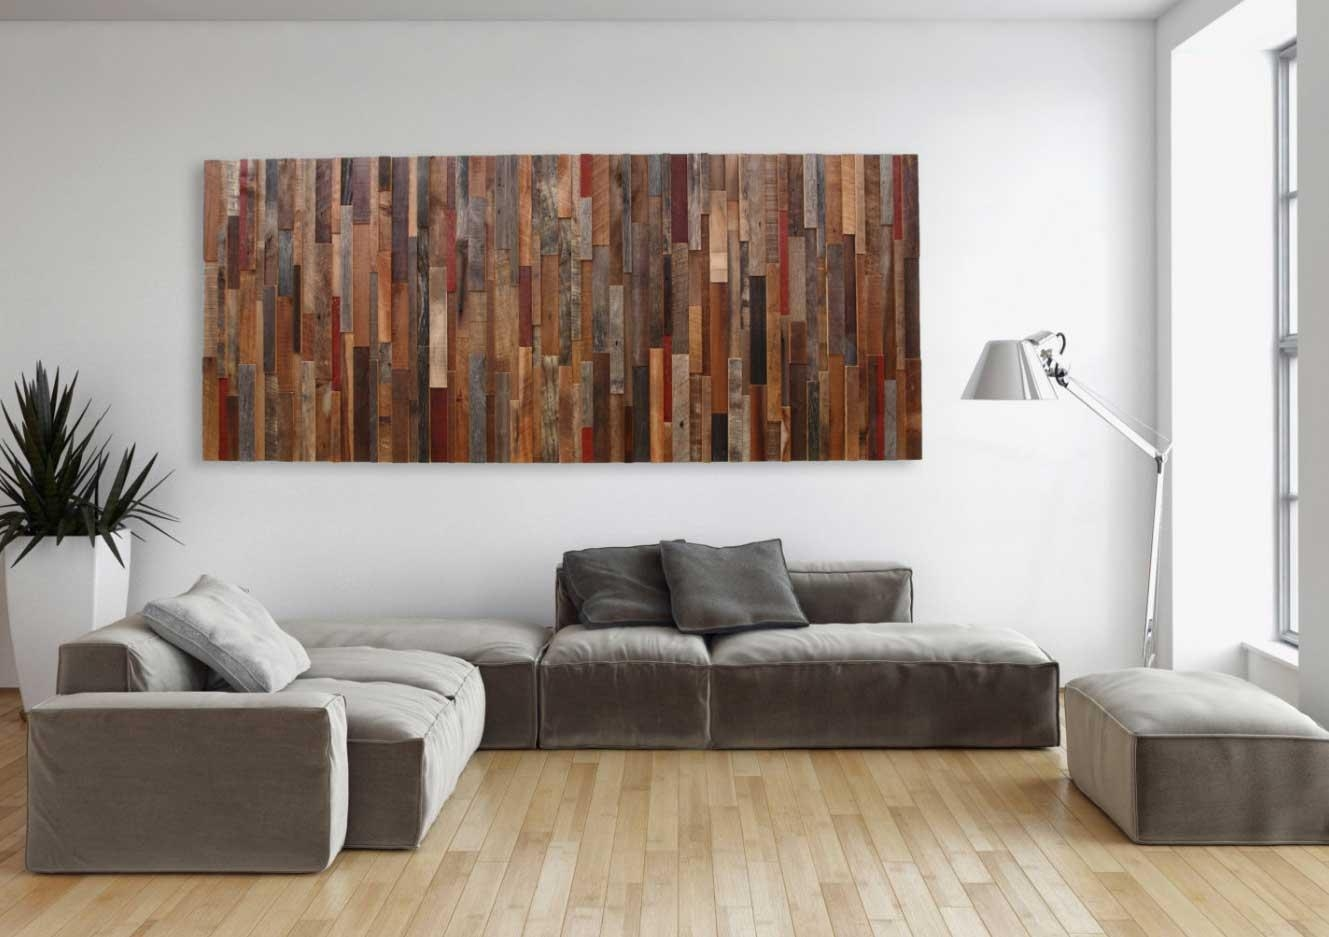 Oversized Wall Art Contemporary Sculpture Ideas | Home Interior Pertaining To Contemporary Oversized Wall Art (Image 9 of 20)